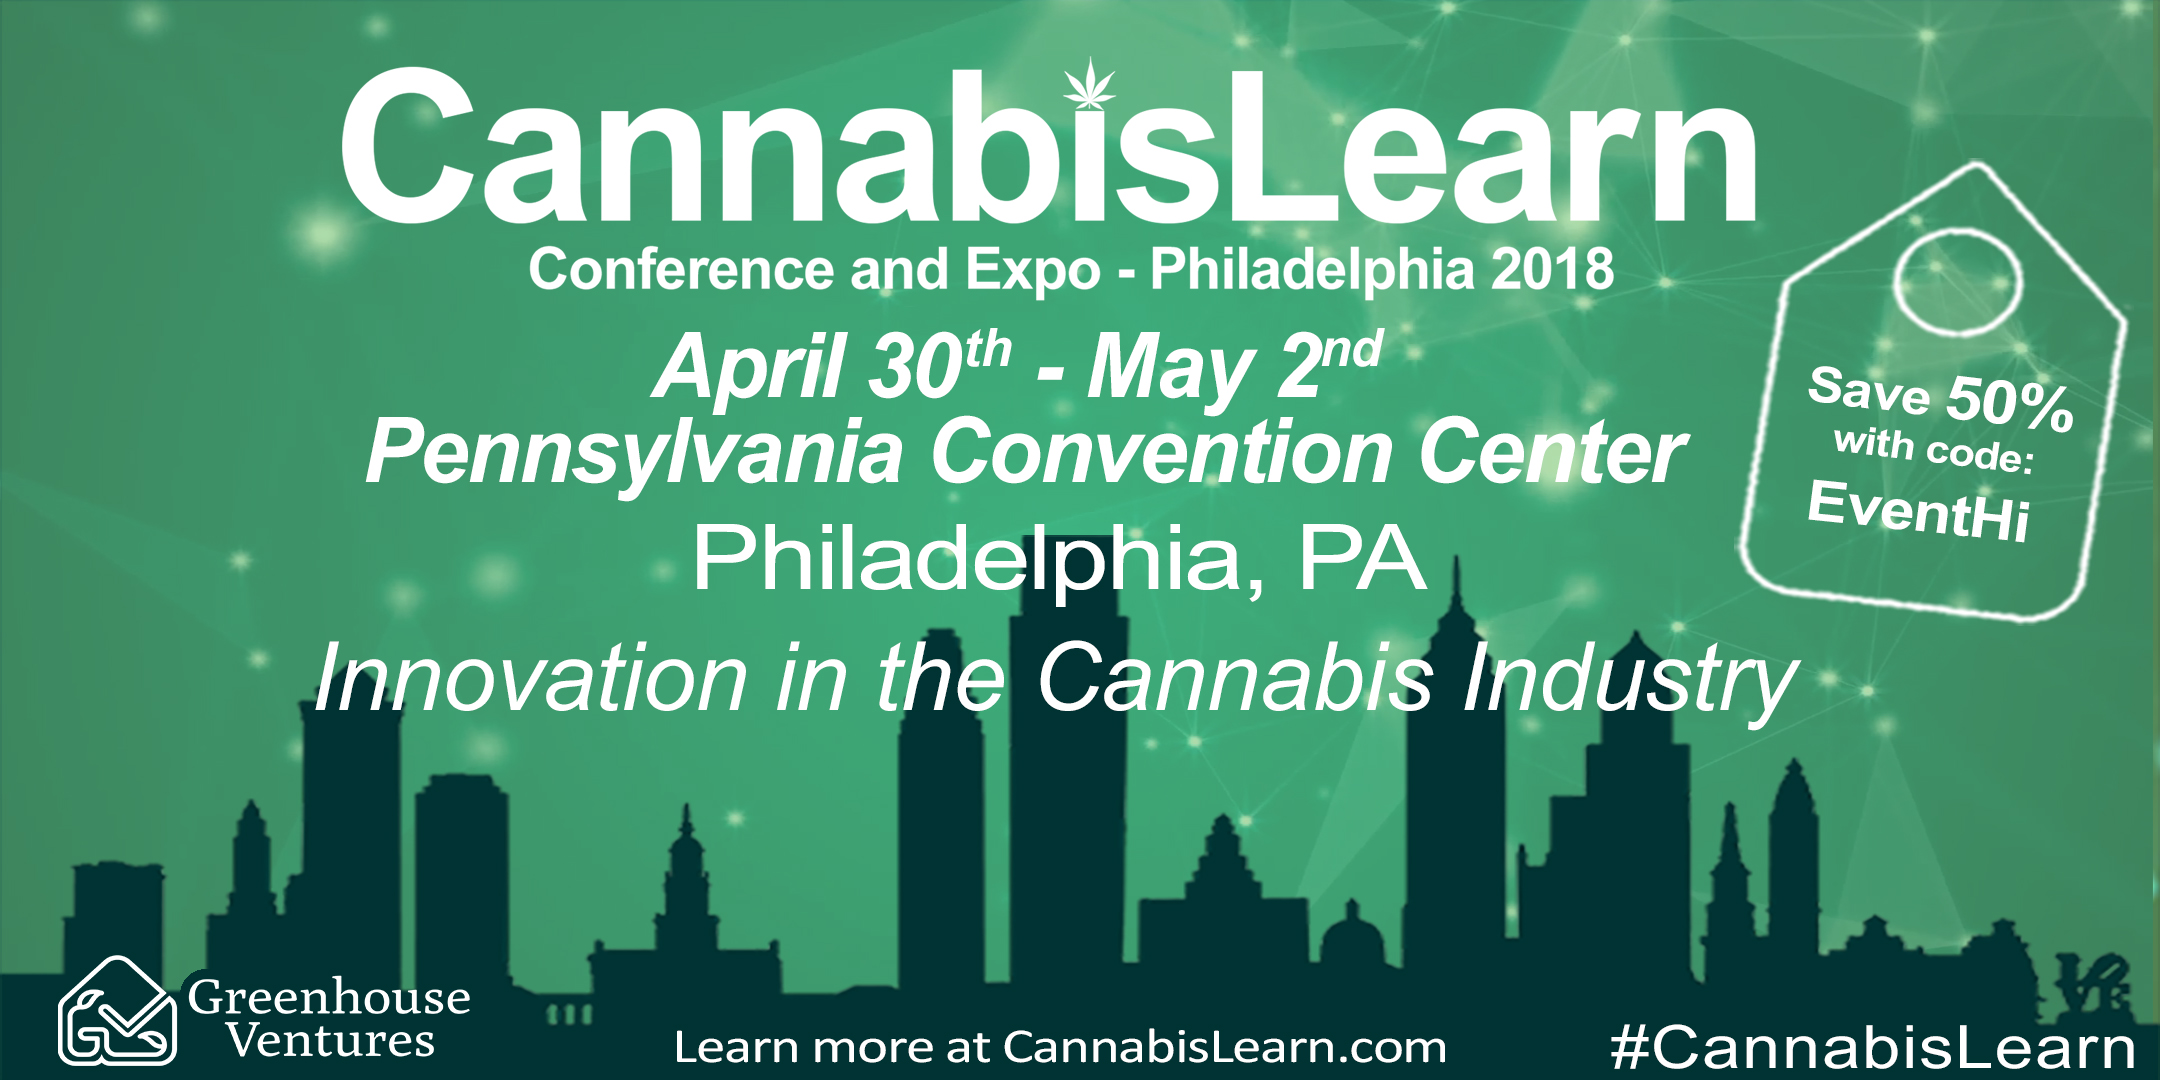 Cannabis Learn Conference and Expo